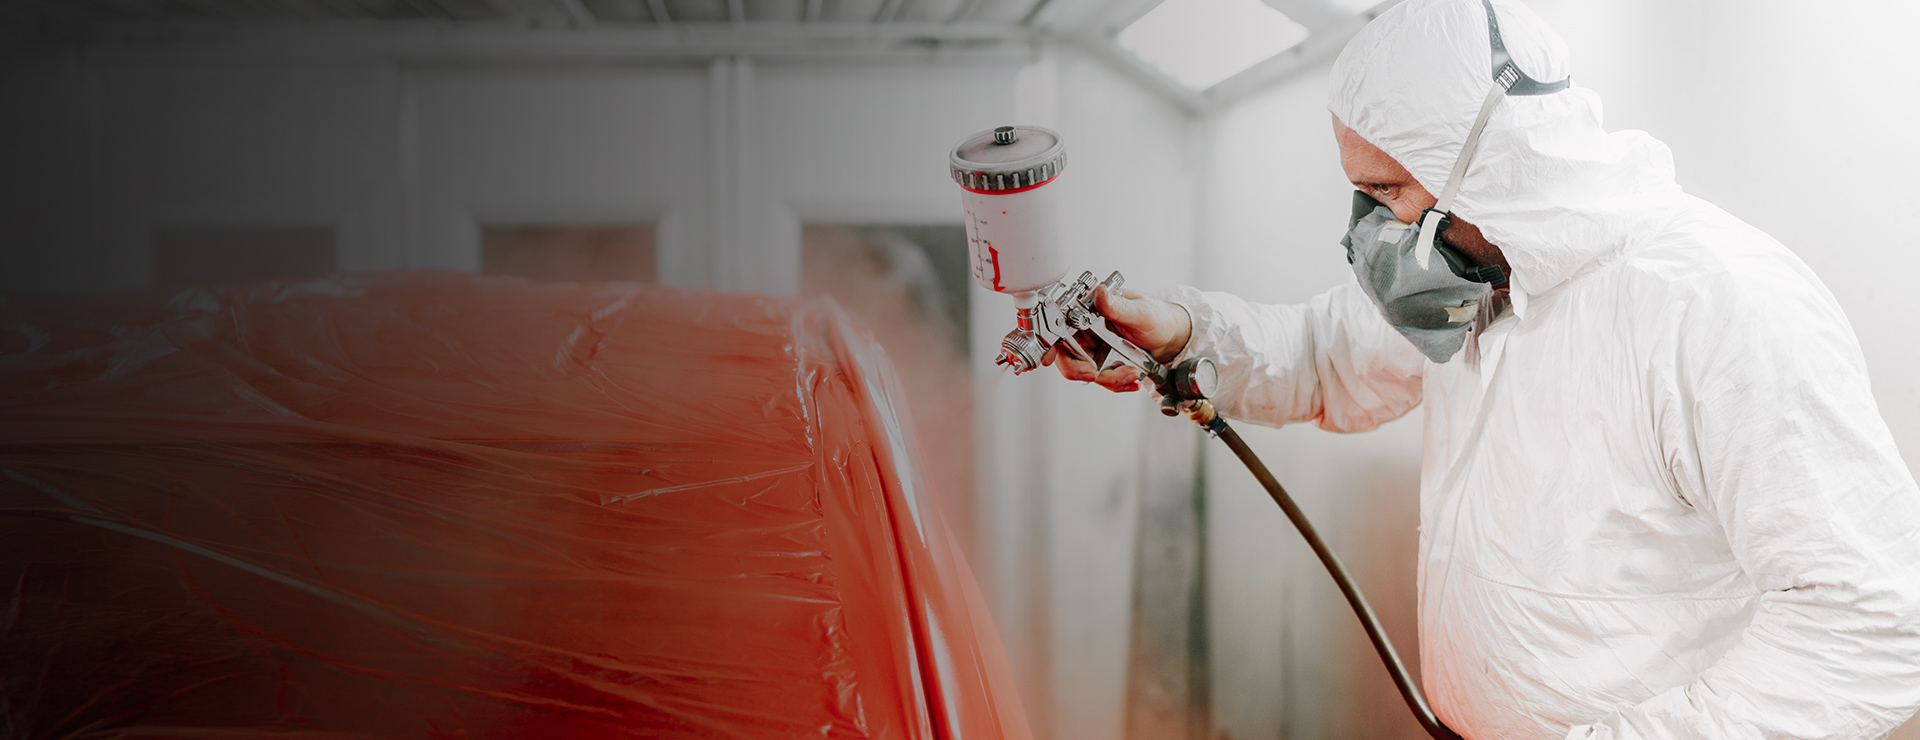 automotive refinishing fire suppression